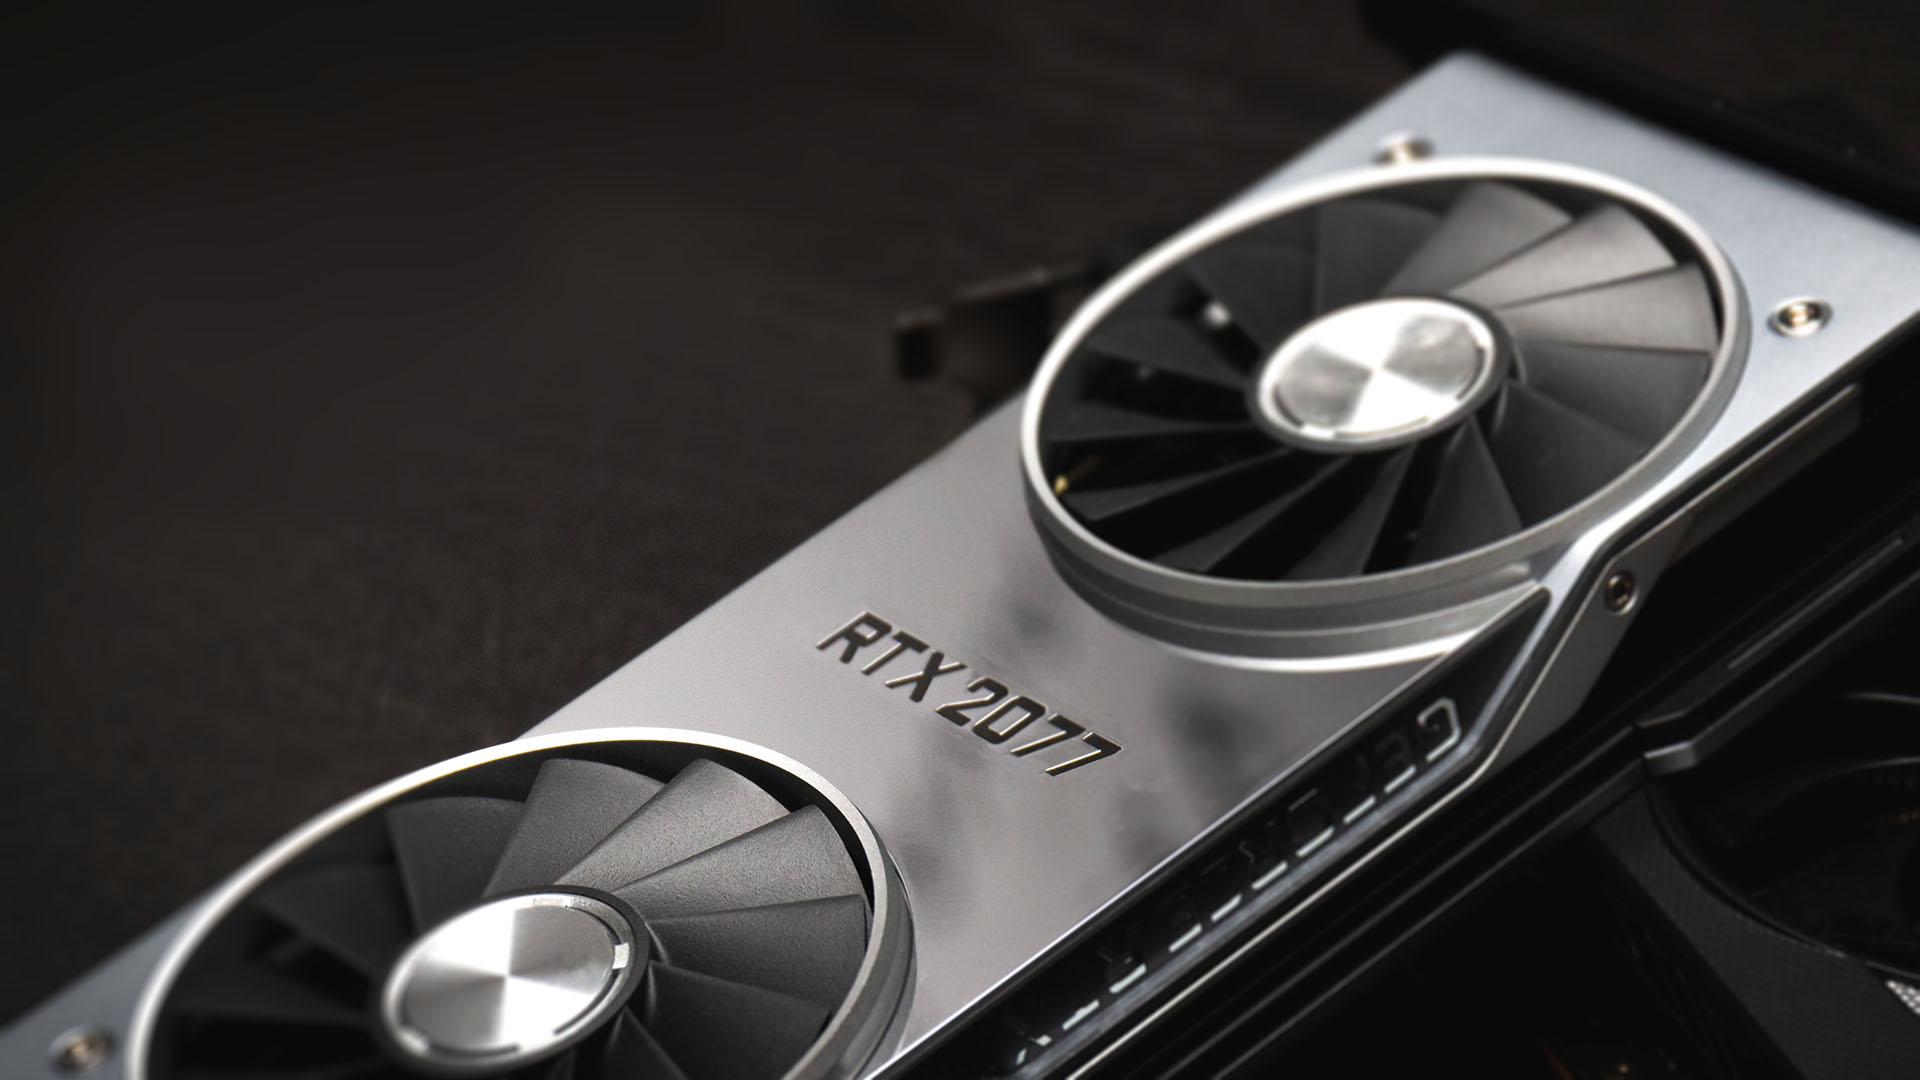 Nvidia RTX 2077? Official Cyberpunk 2077 graphics card confirmed